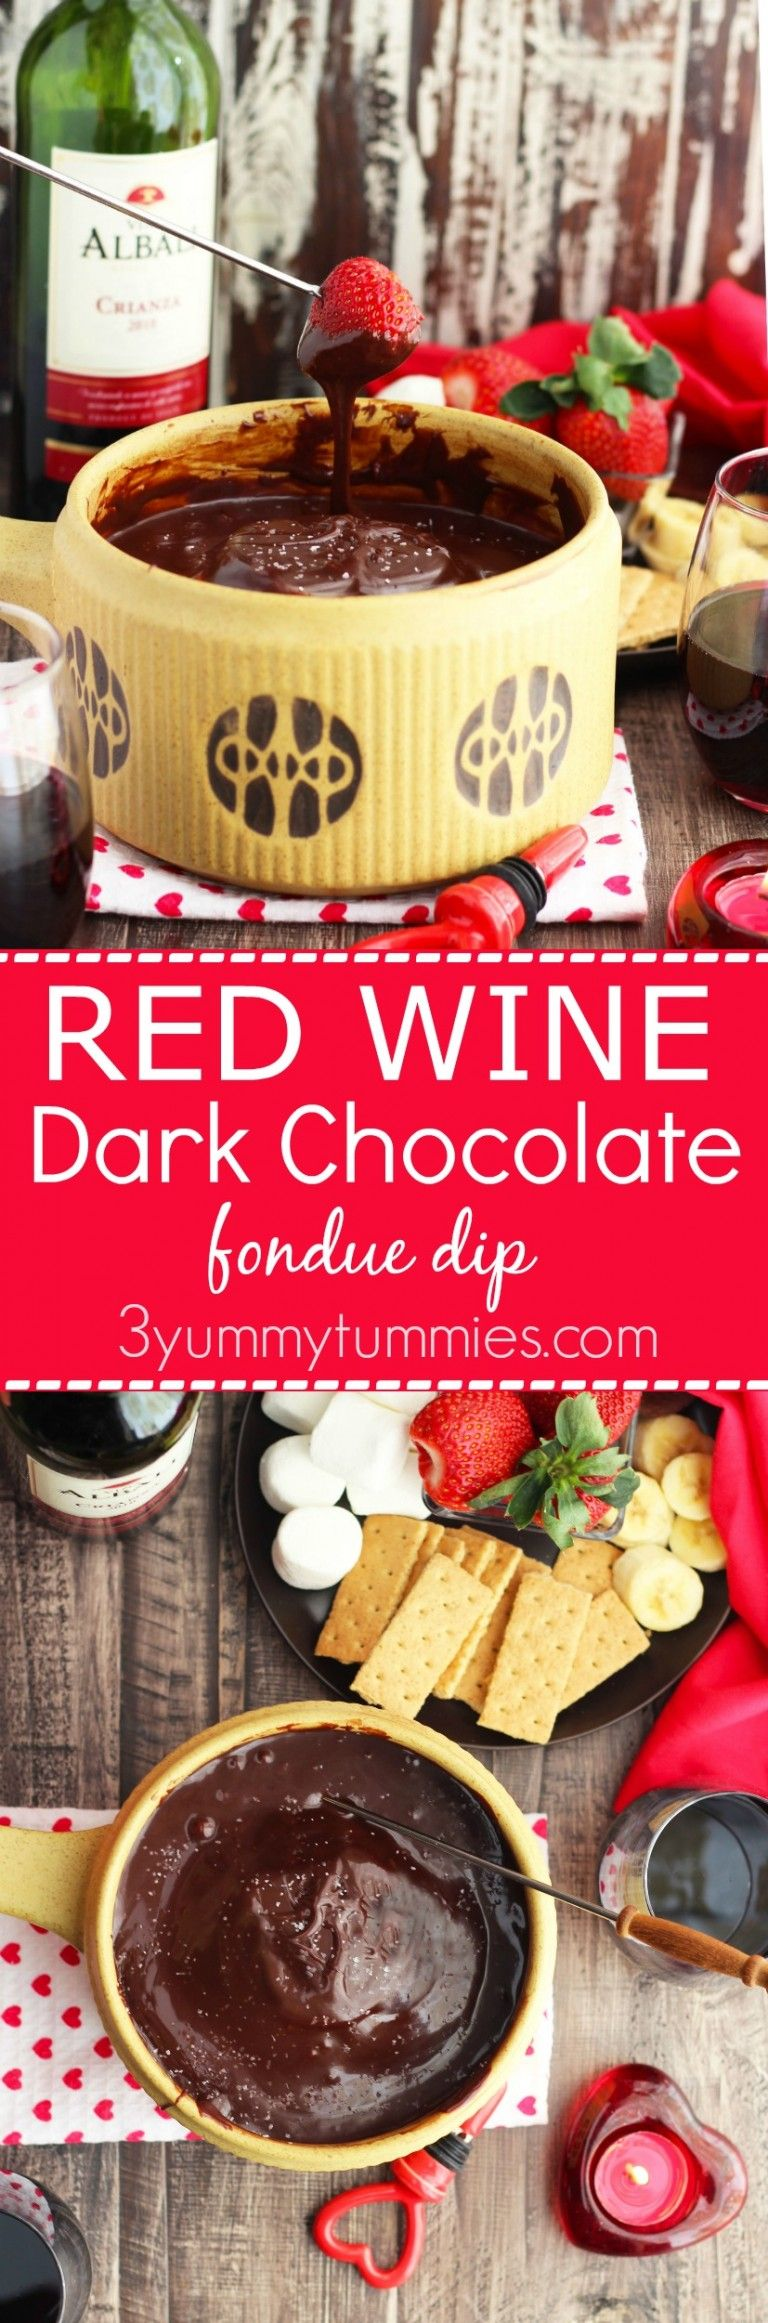 Subtle Flavors Of Red Wine And Raspberry Make This Dark Chocolate Fondue Irresistable You May Just Want To Eat It With A Spoo Yummy Food Dessert Food Desserts